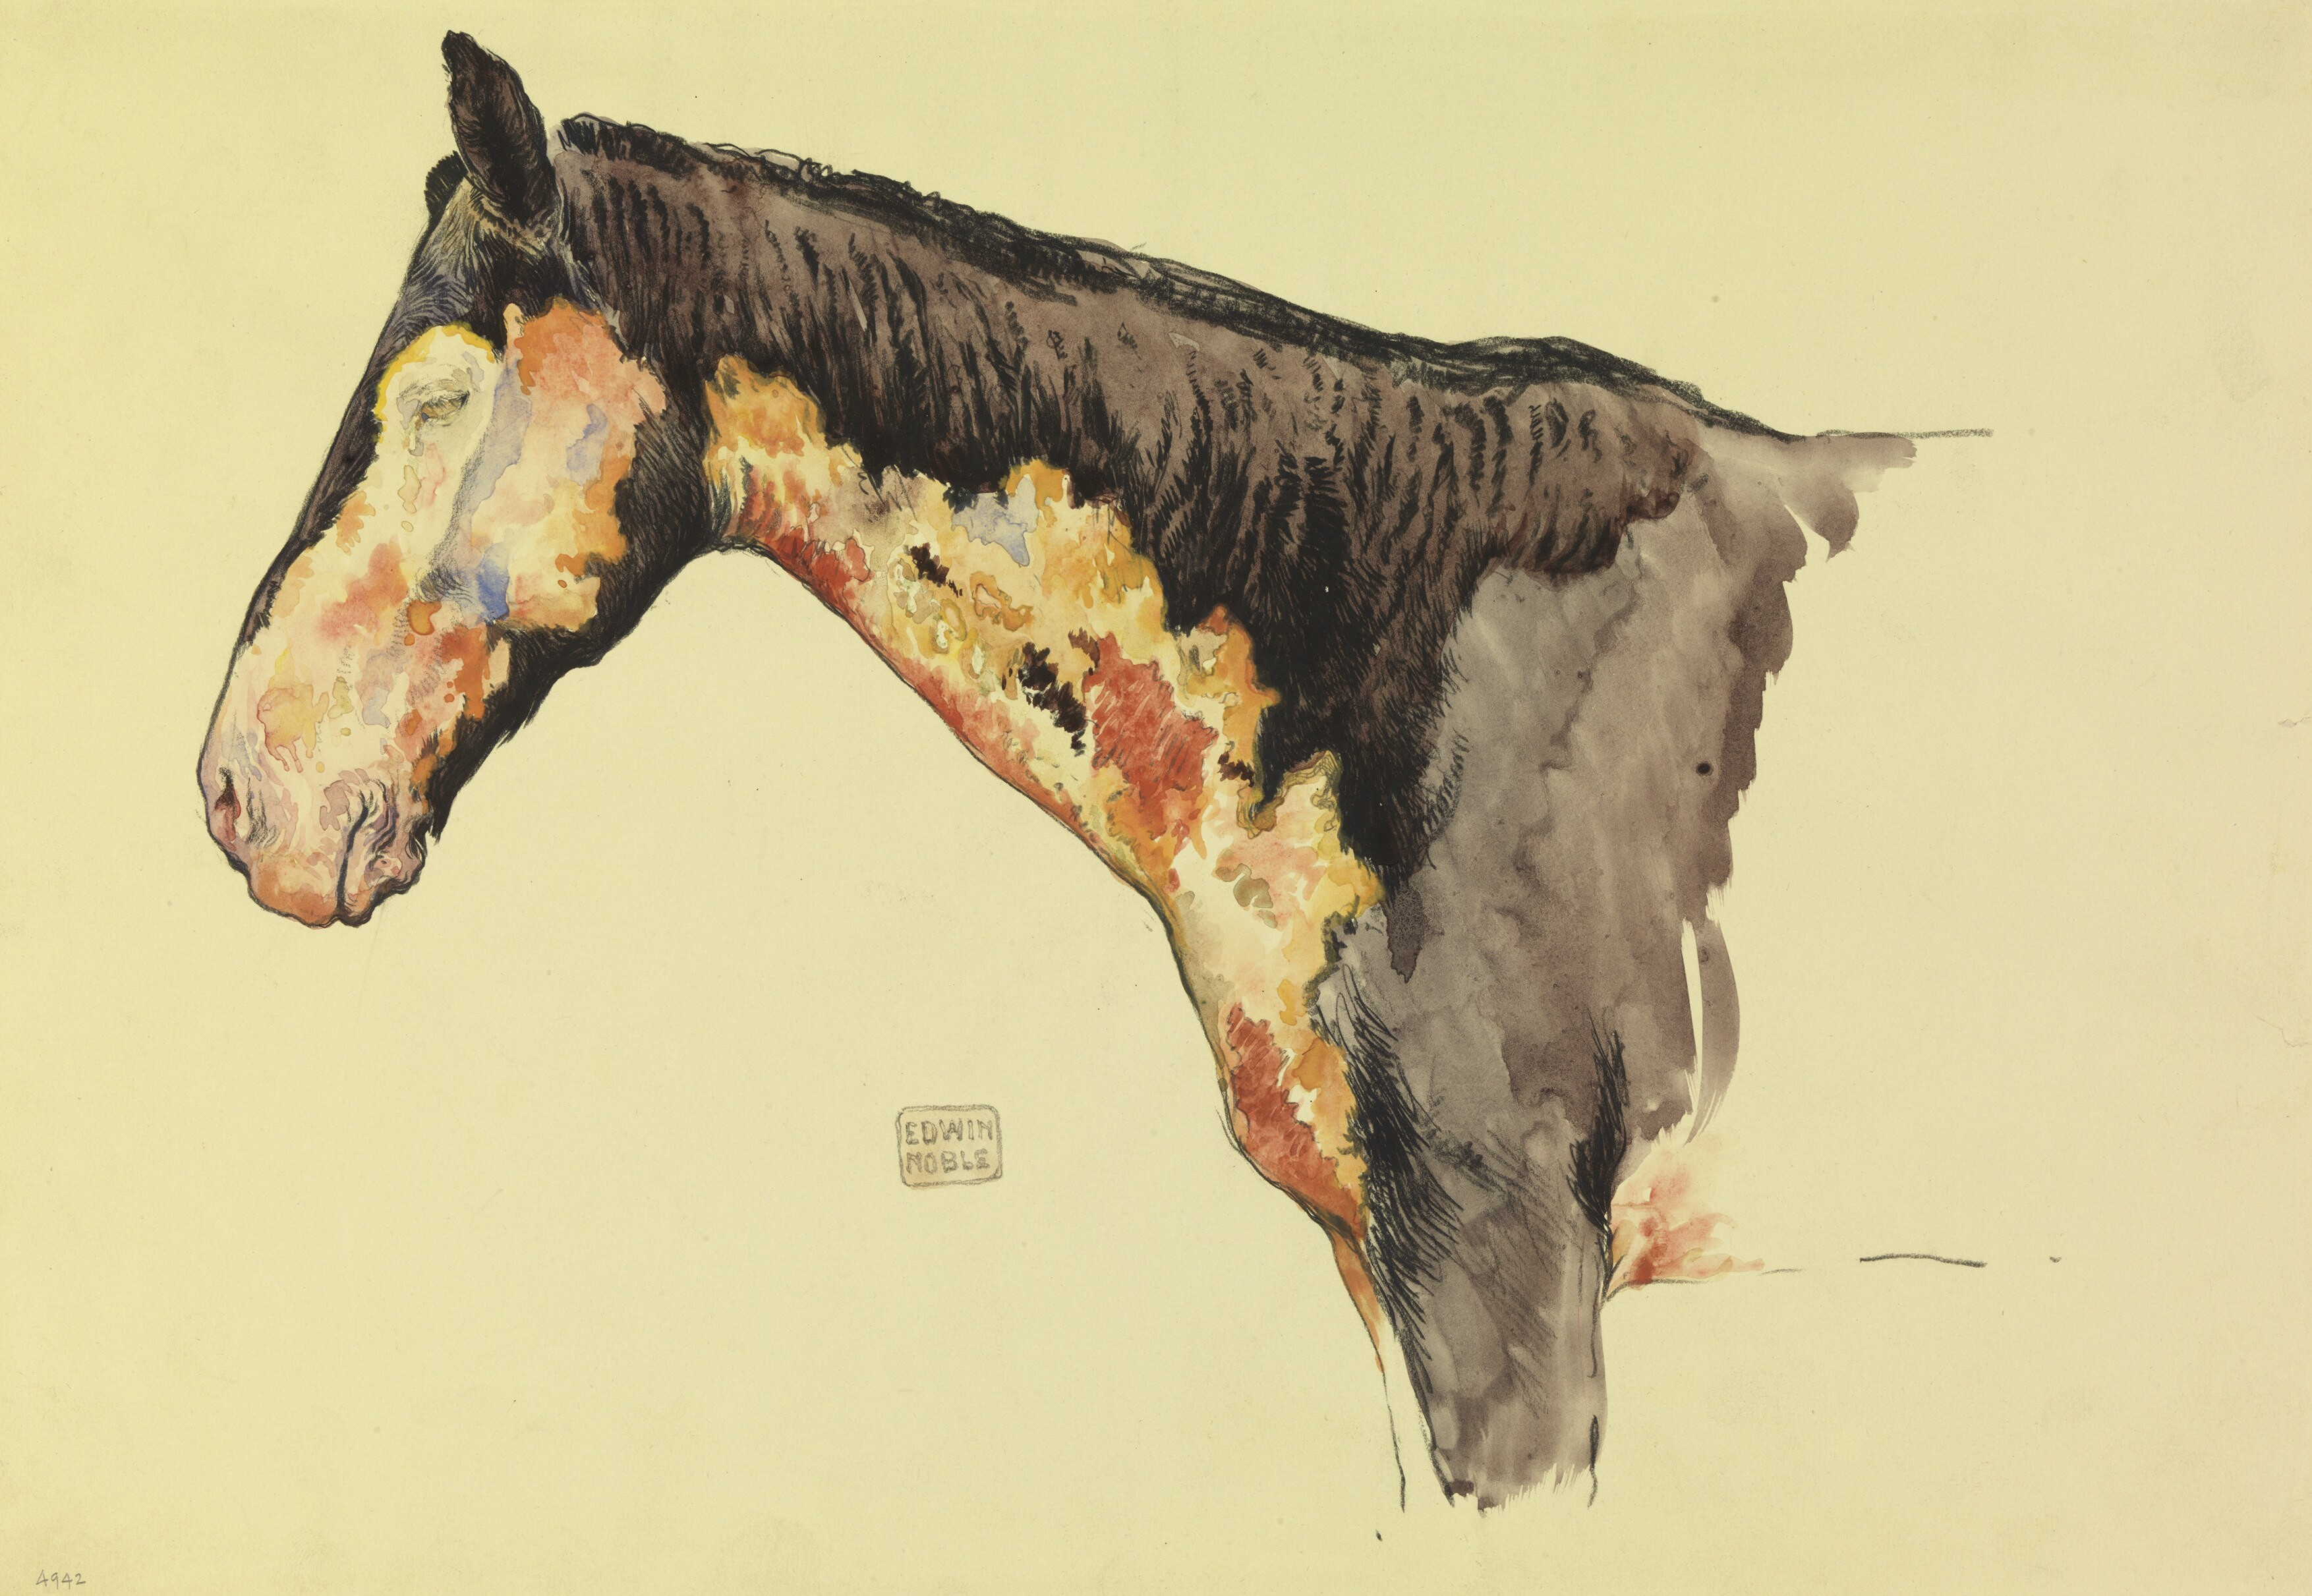 Mustard_Gas-_Sketch_to_Illustrate_the_Effect_of_Mustard_Gas_on_Horses_Art.IWMART4942.jpg